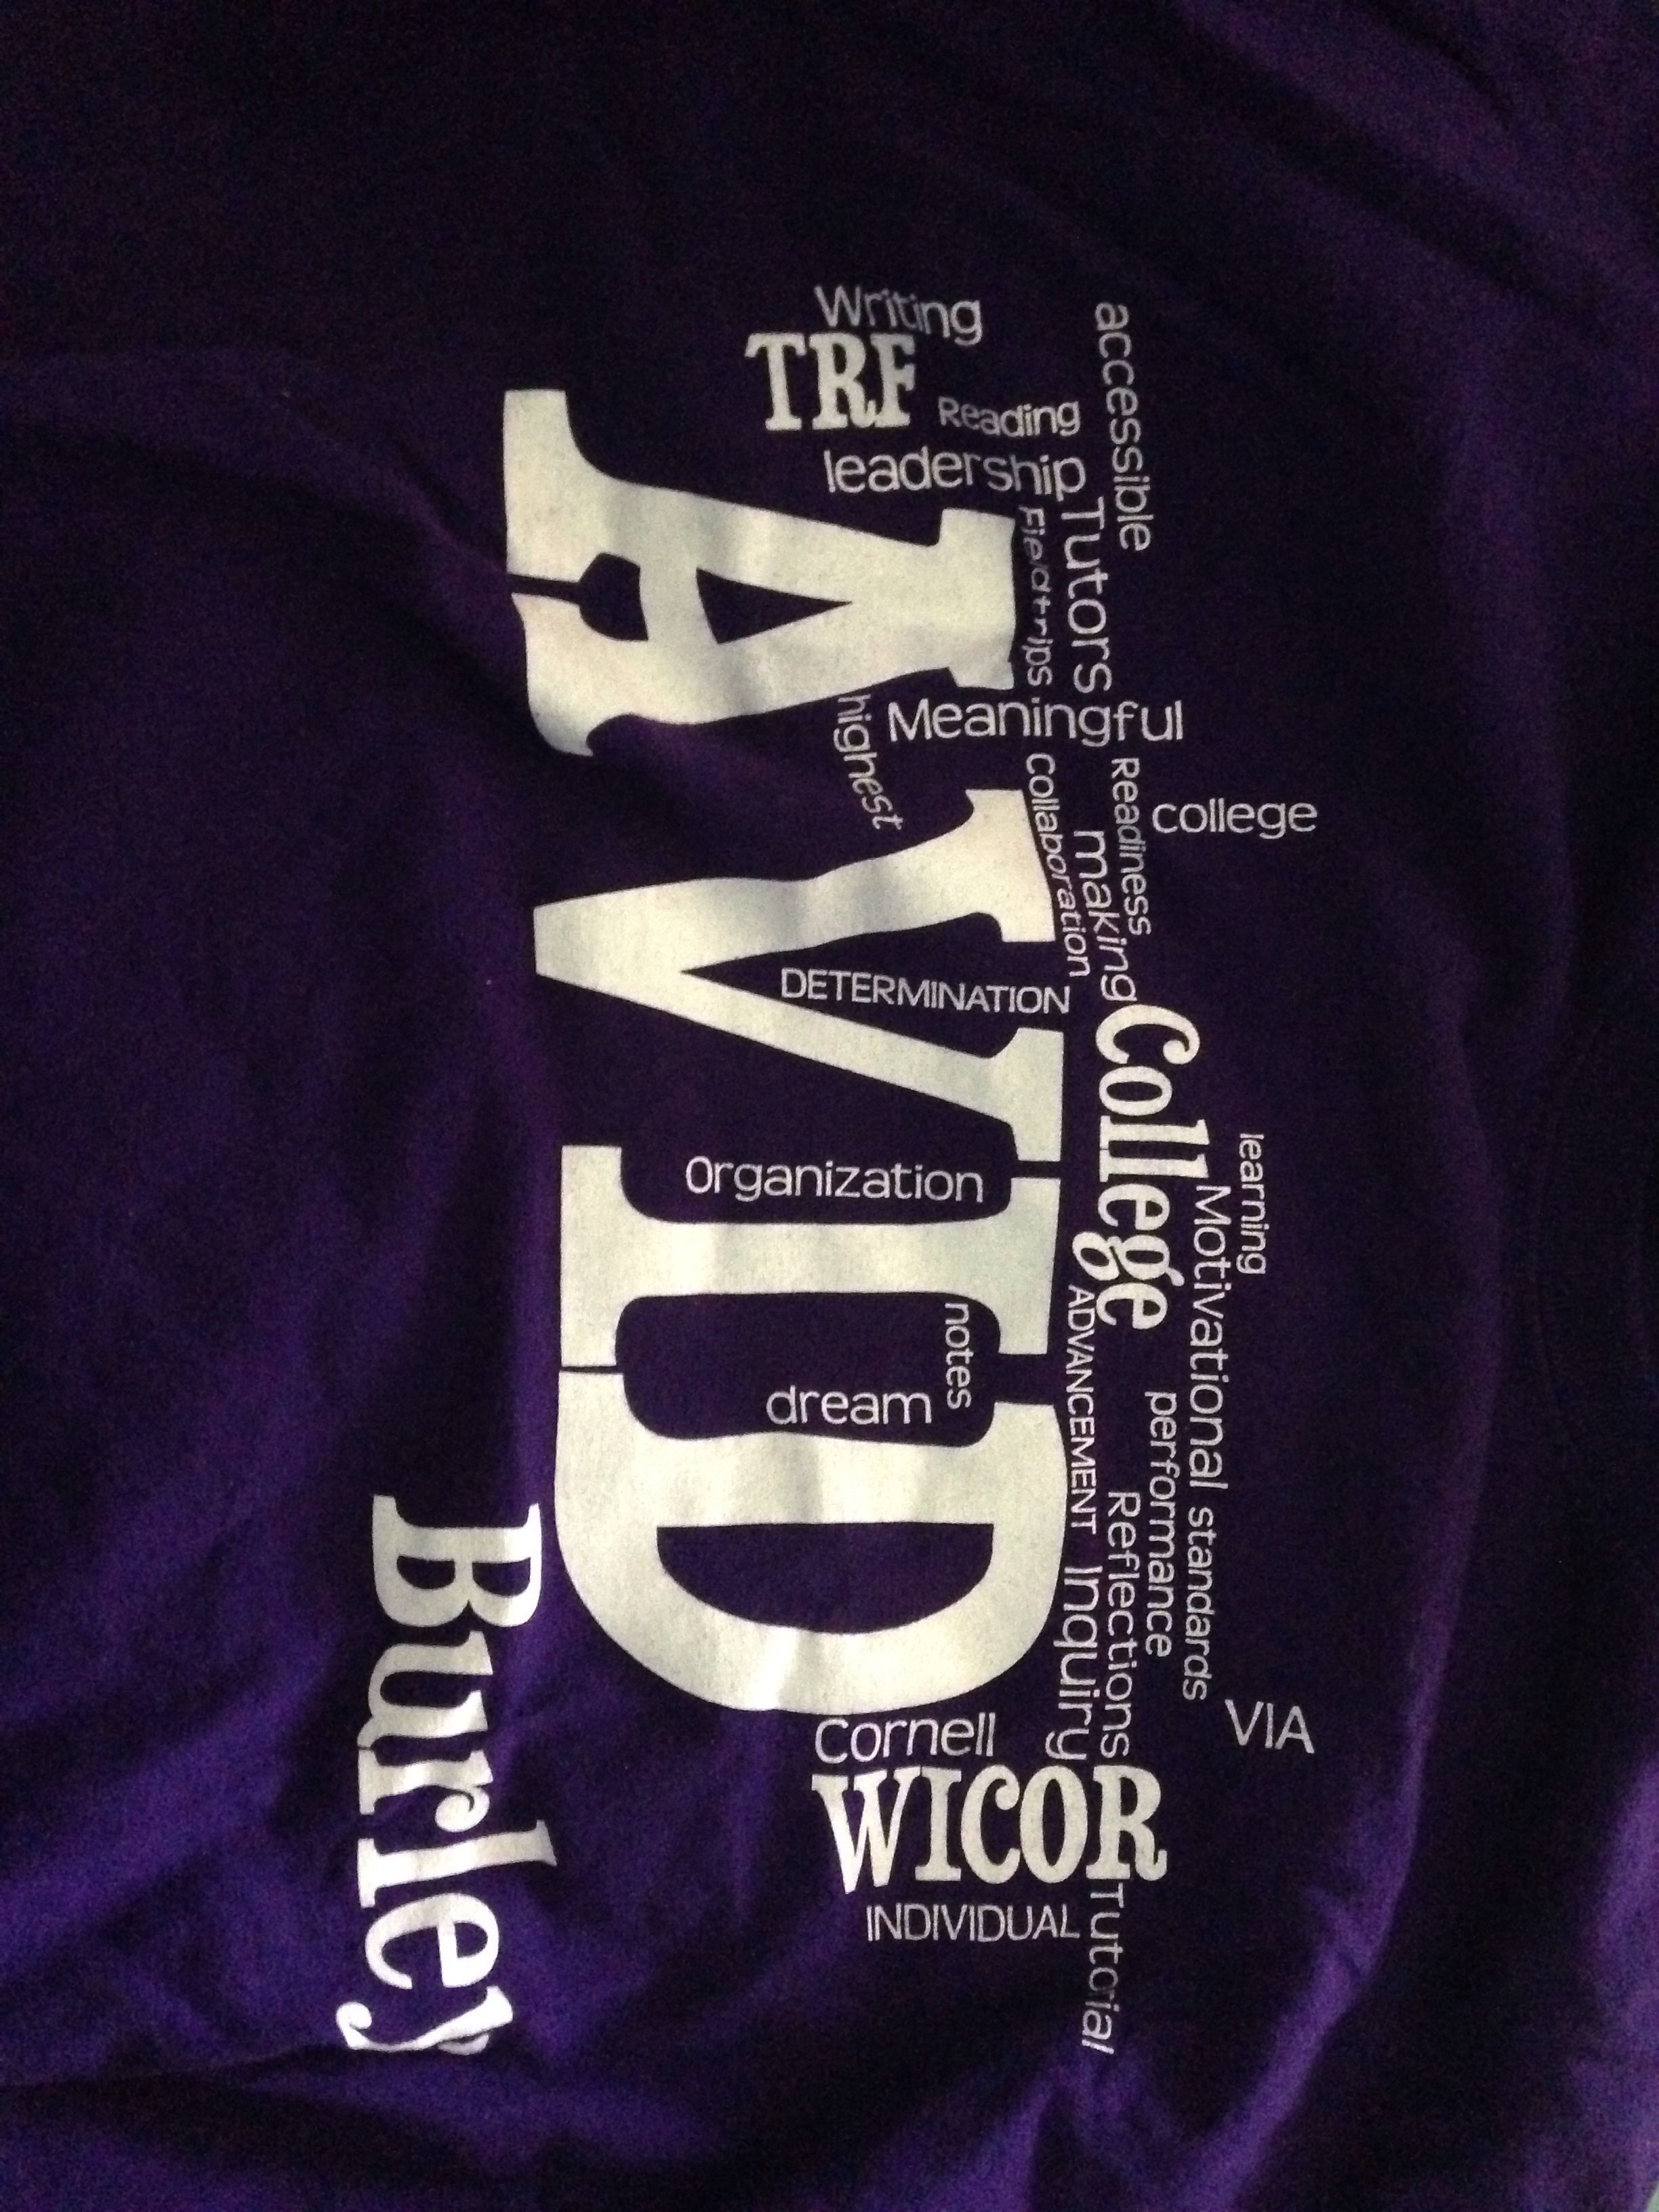 Burley Avid T Shirt Wordle Fundraiser Avid Resources And Ideas